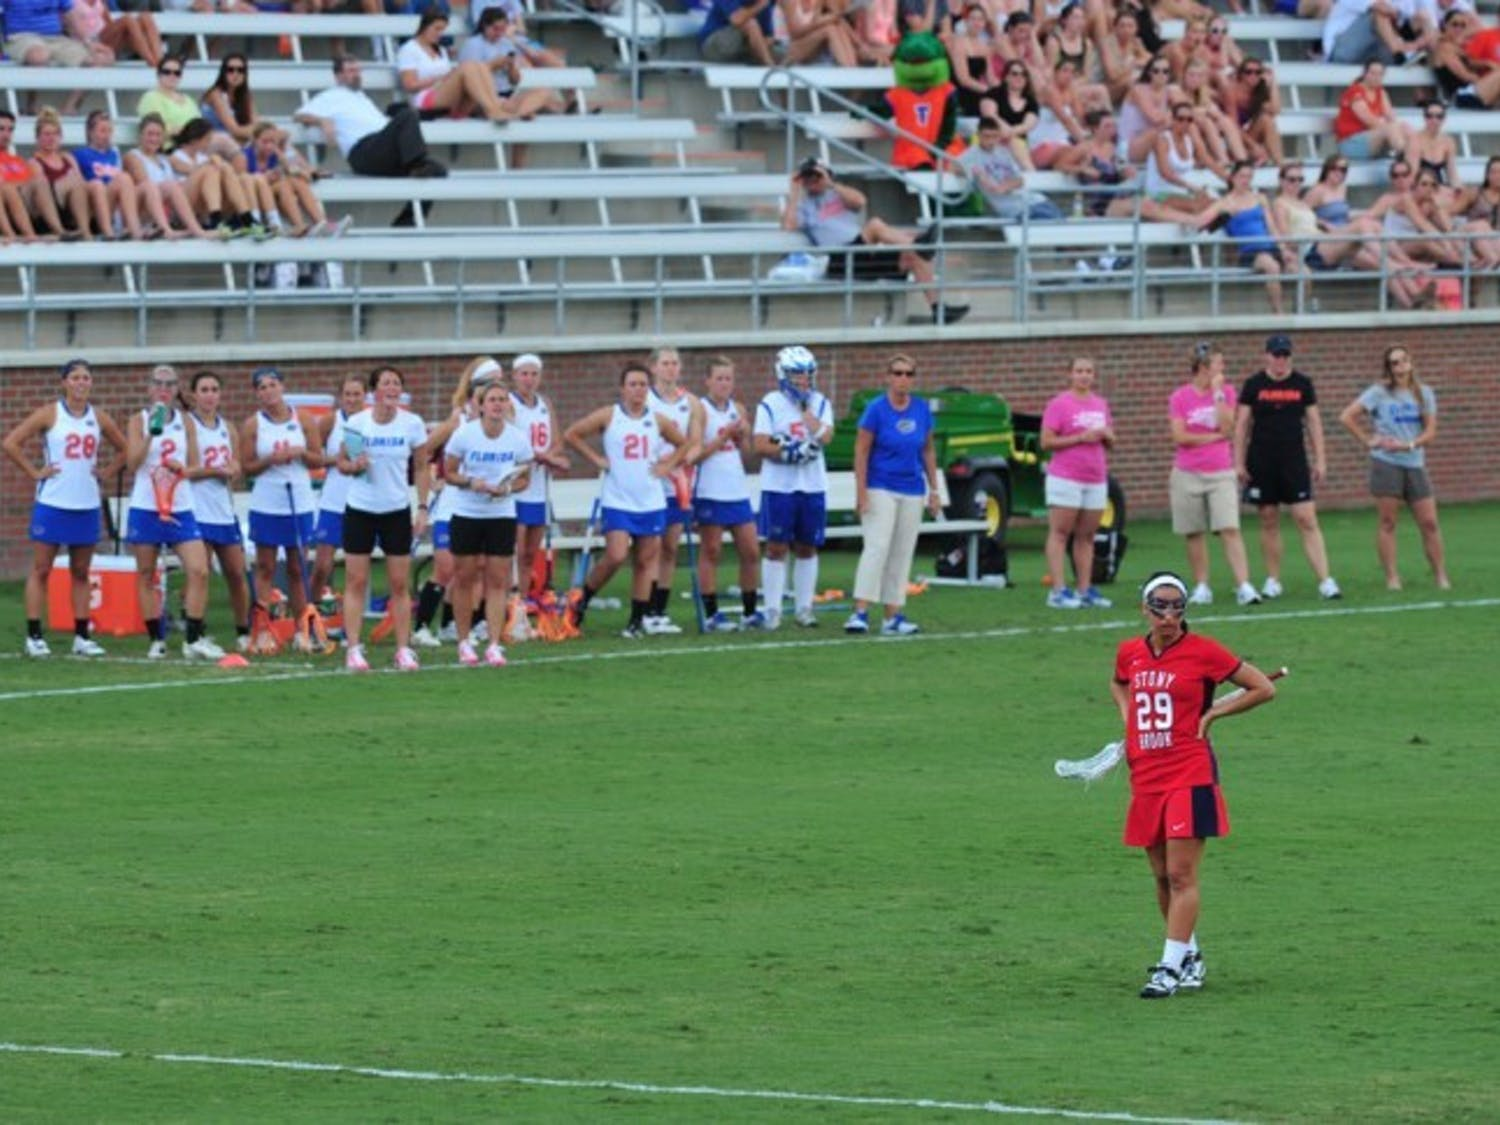 Former Florida midfielder Janine Hillier, who transferred to Stony Brook in the offseason, stands by herself during the Gators' 17-4 win over the Seawolves on Wednesday. Hillier was held scoreless.